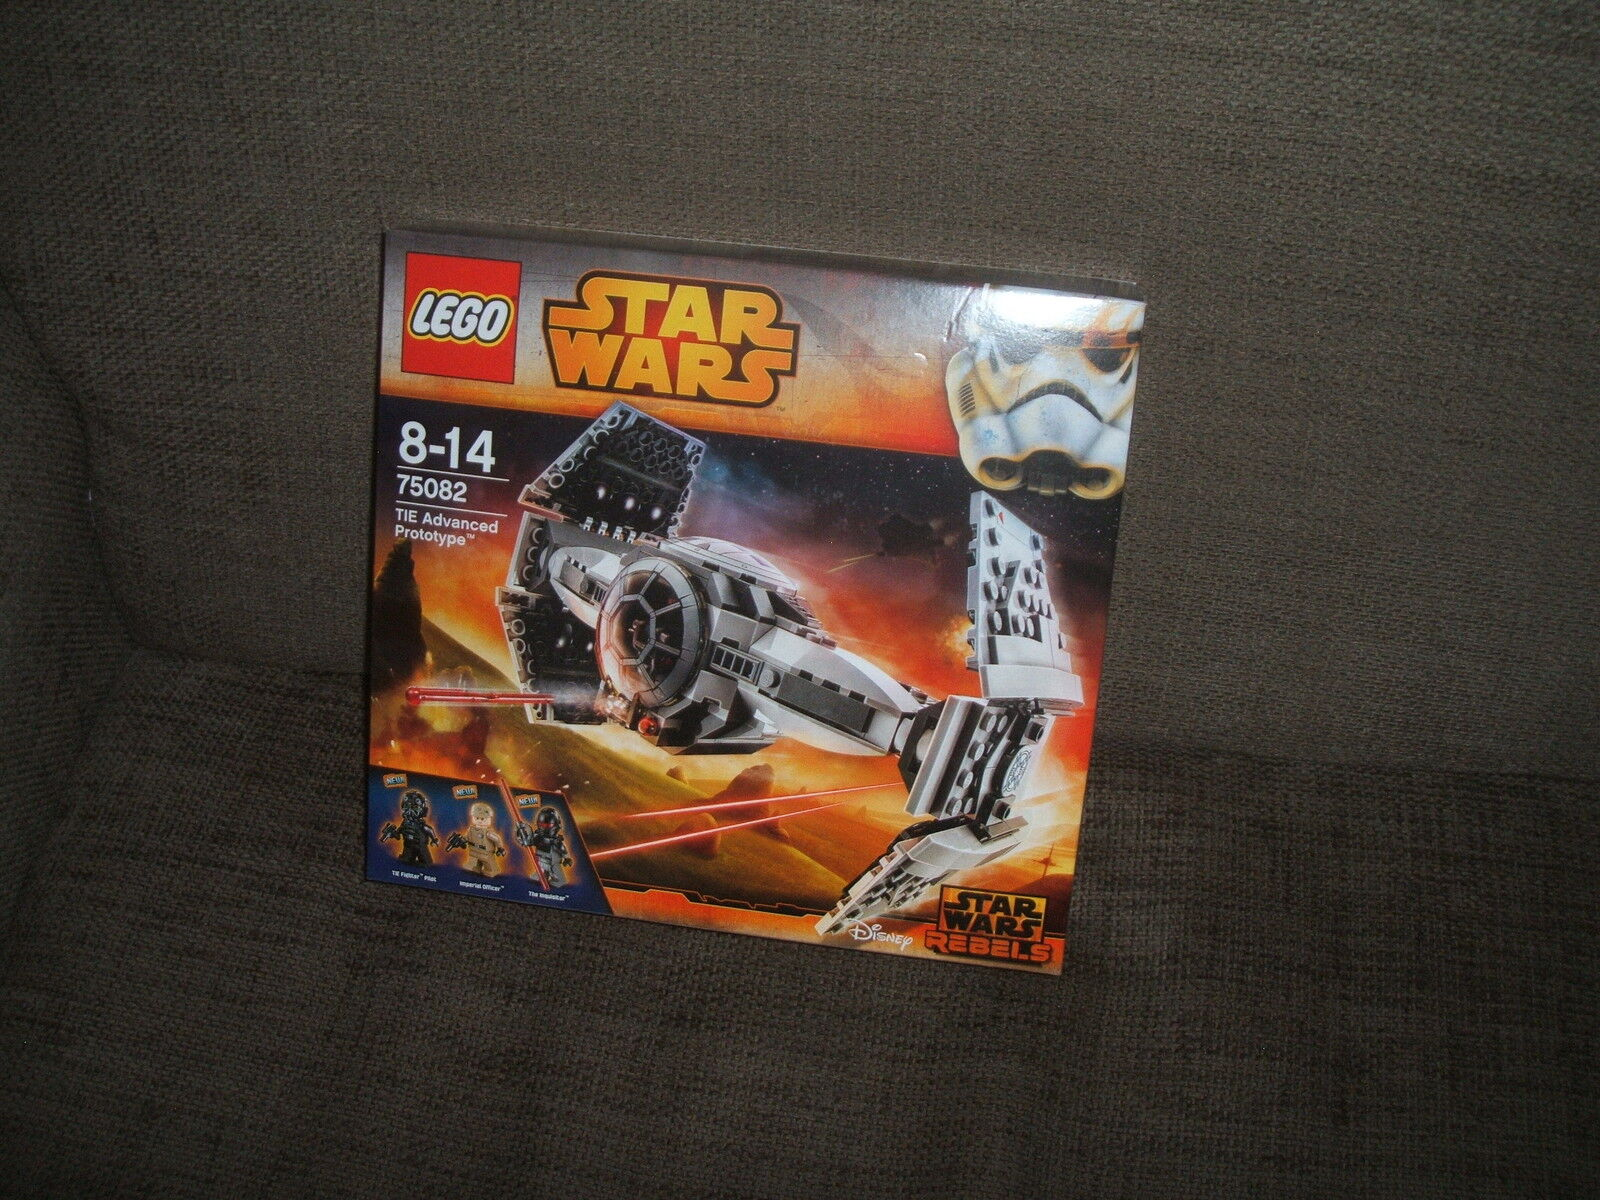 LEGO STAR WARS 75082TIE ADVANCED PROTOTYPEOVP